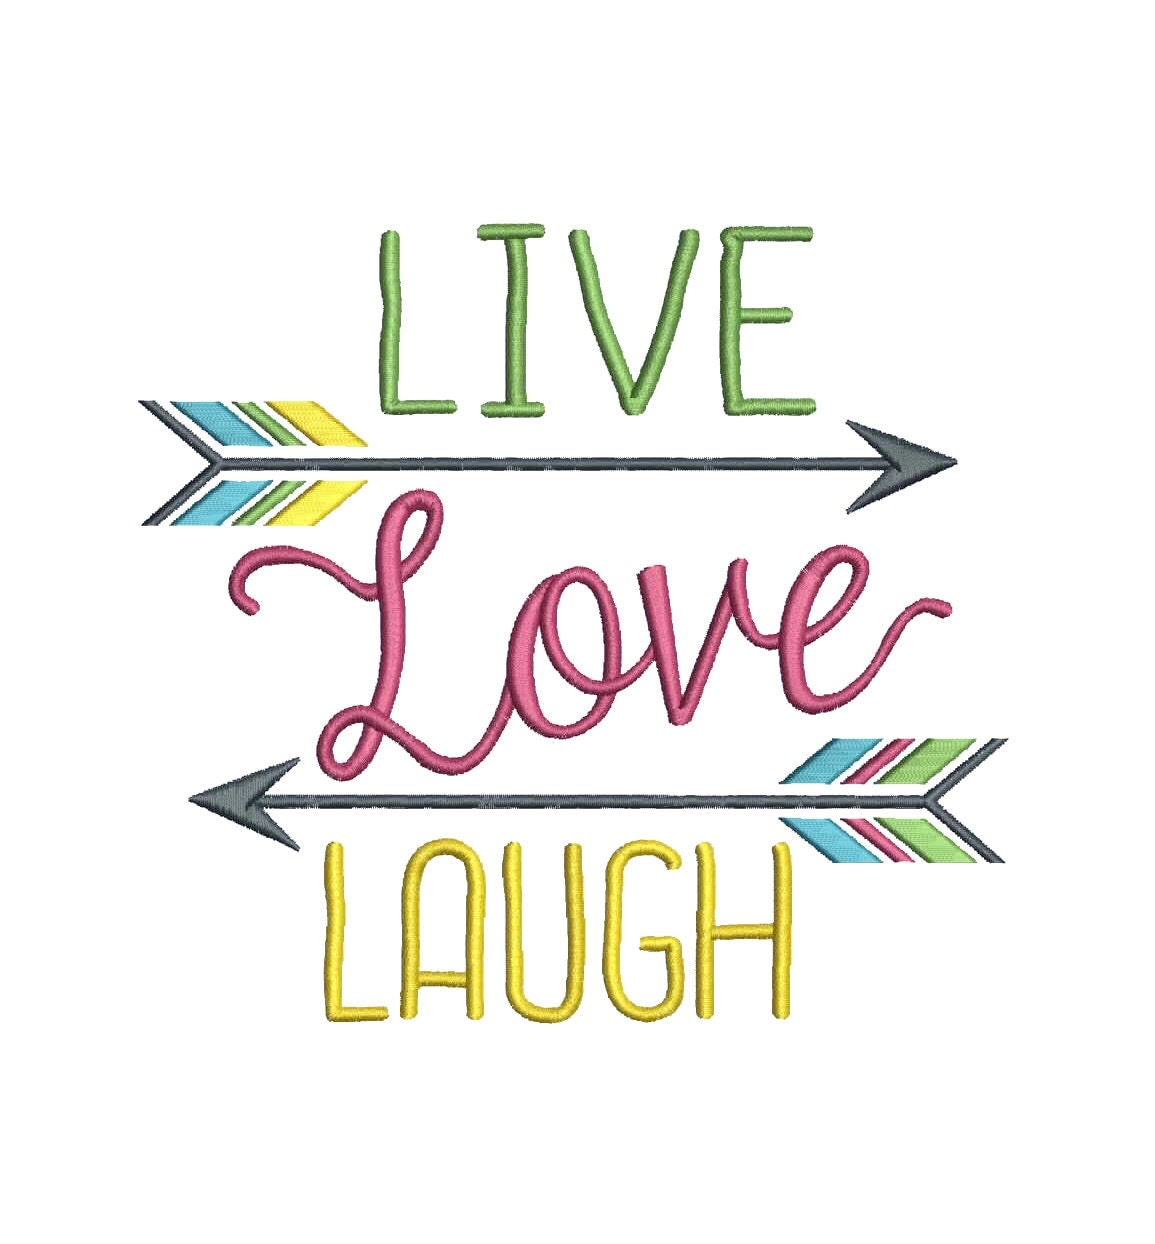 7 w large live love laugh with arrows embroidery design instant digital download from. Black Bedroom Furniture Sets. Home Design Ideas